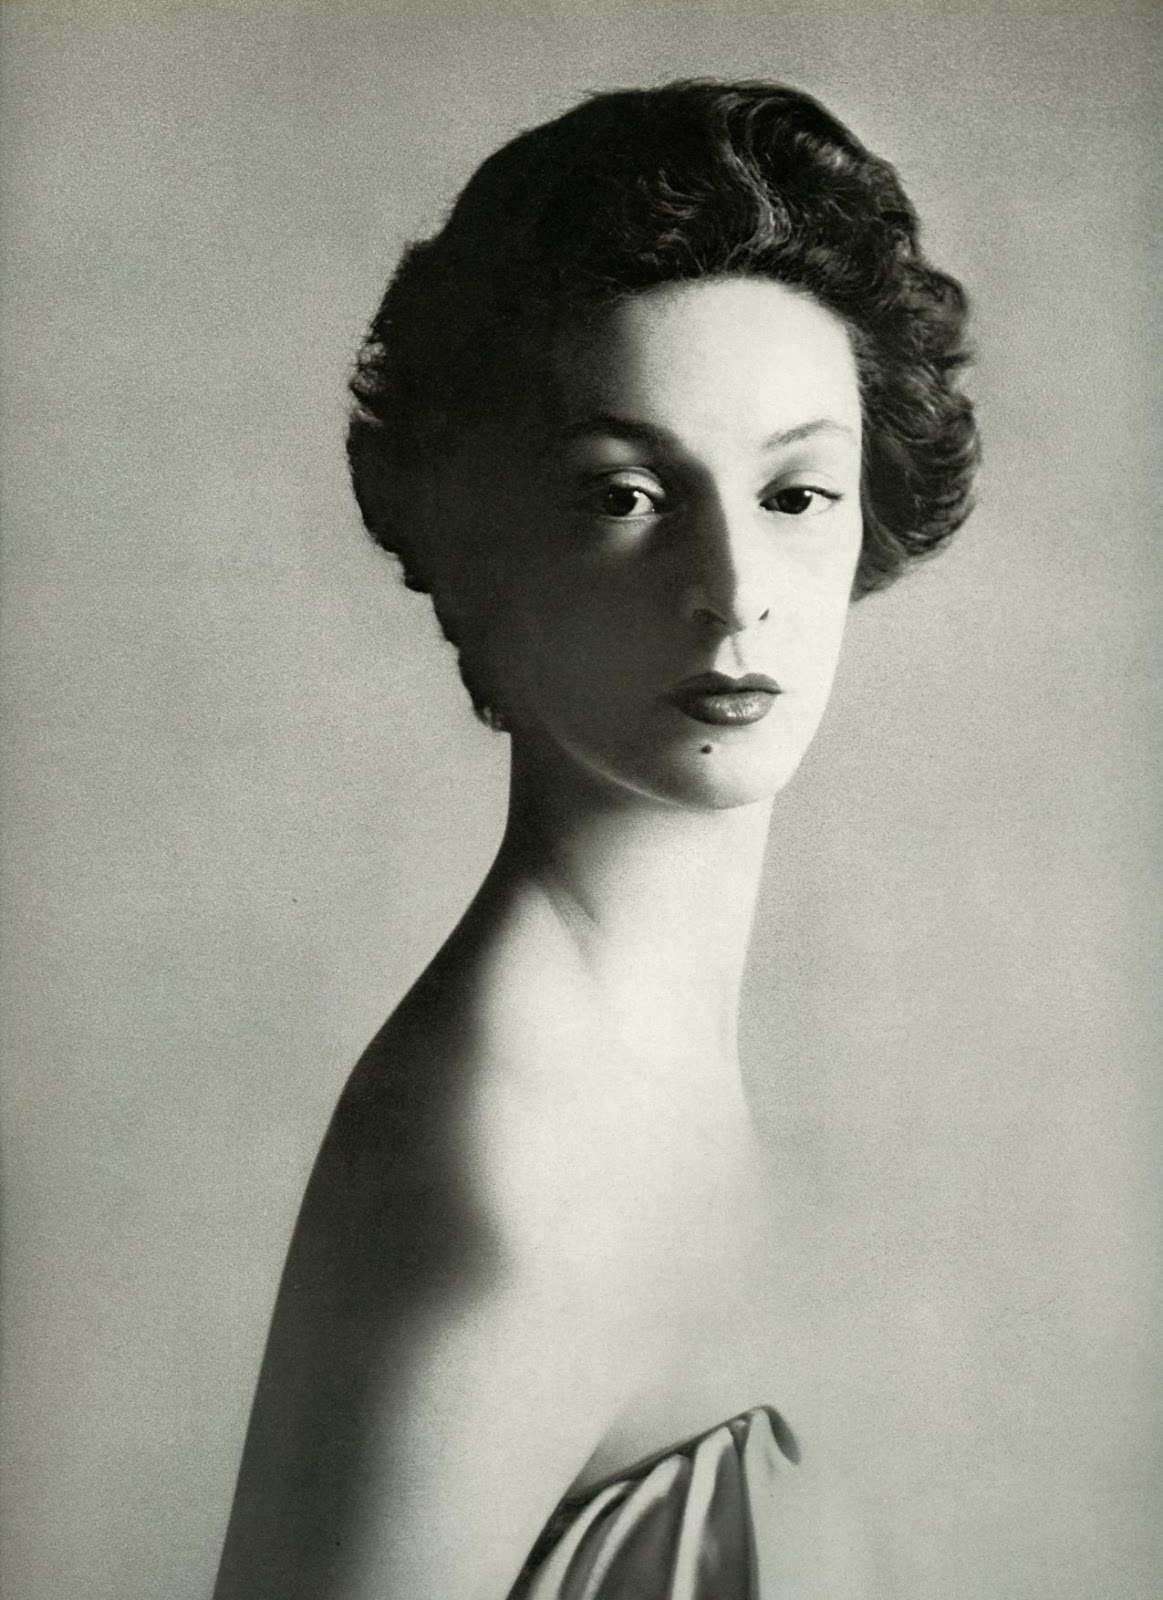 phptpgraph by Richard Avedon